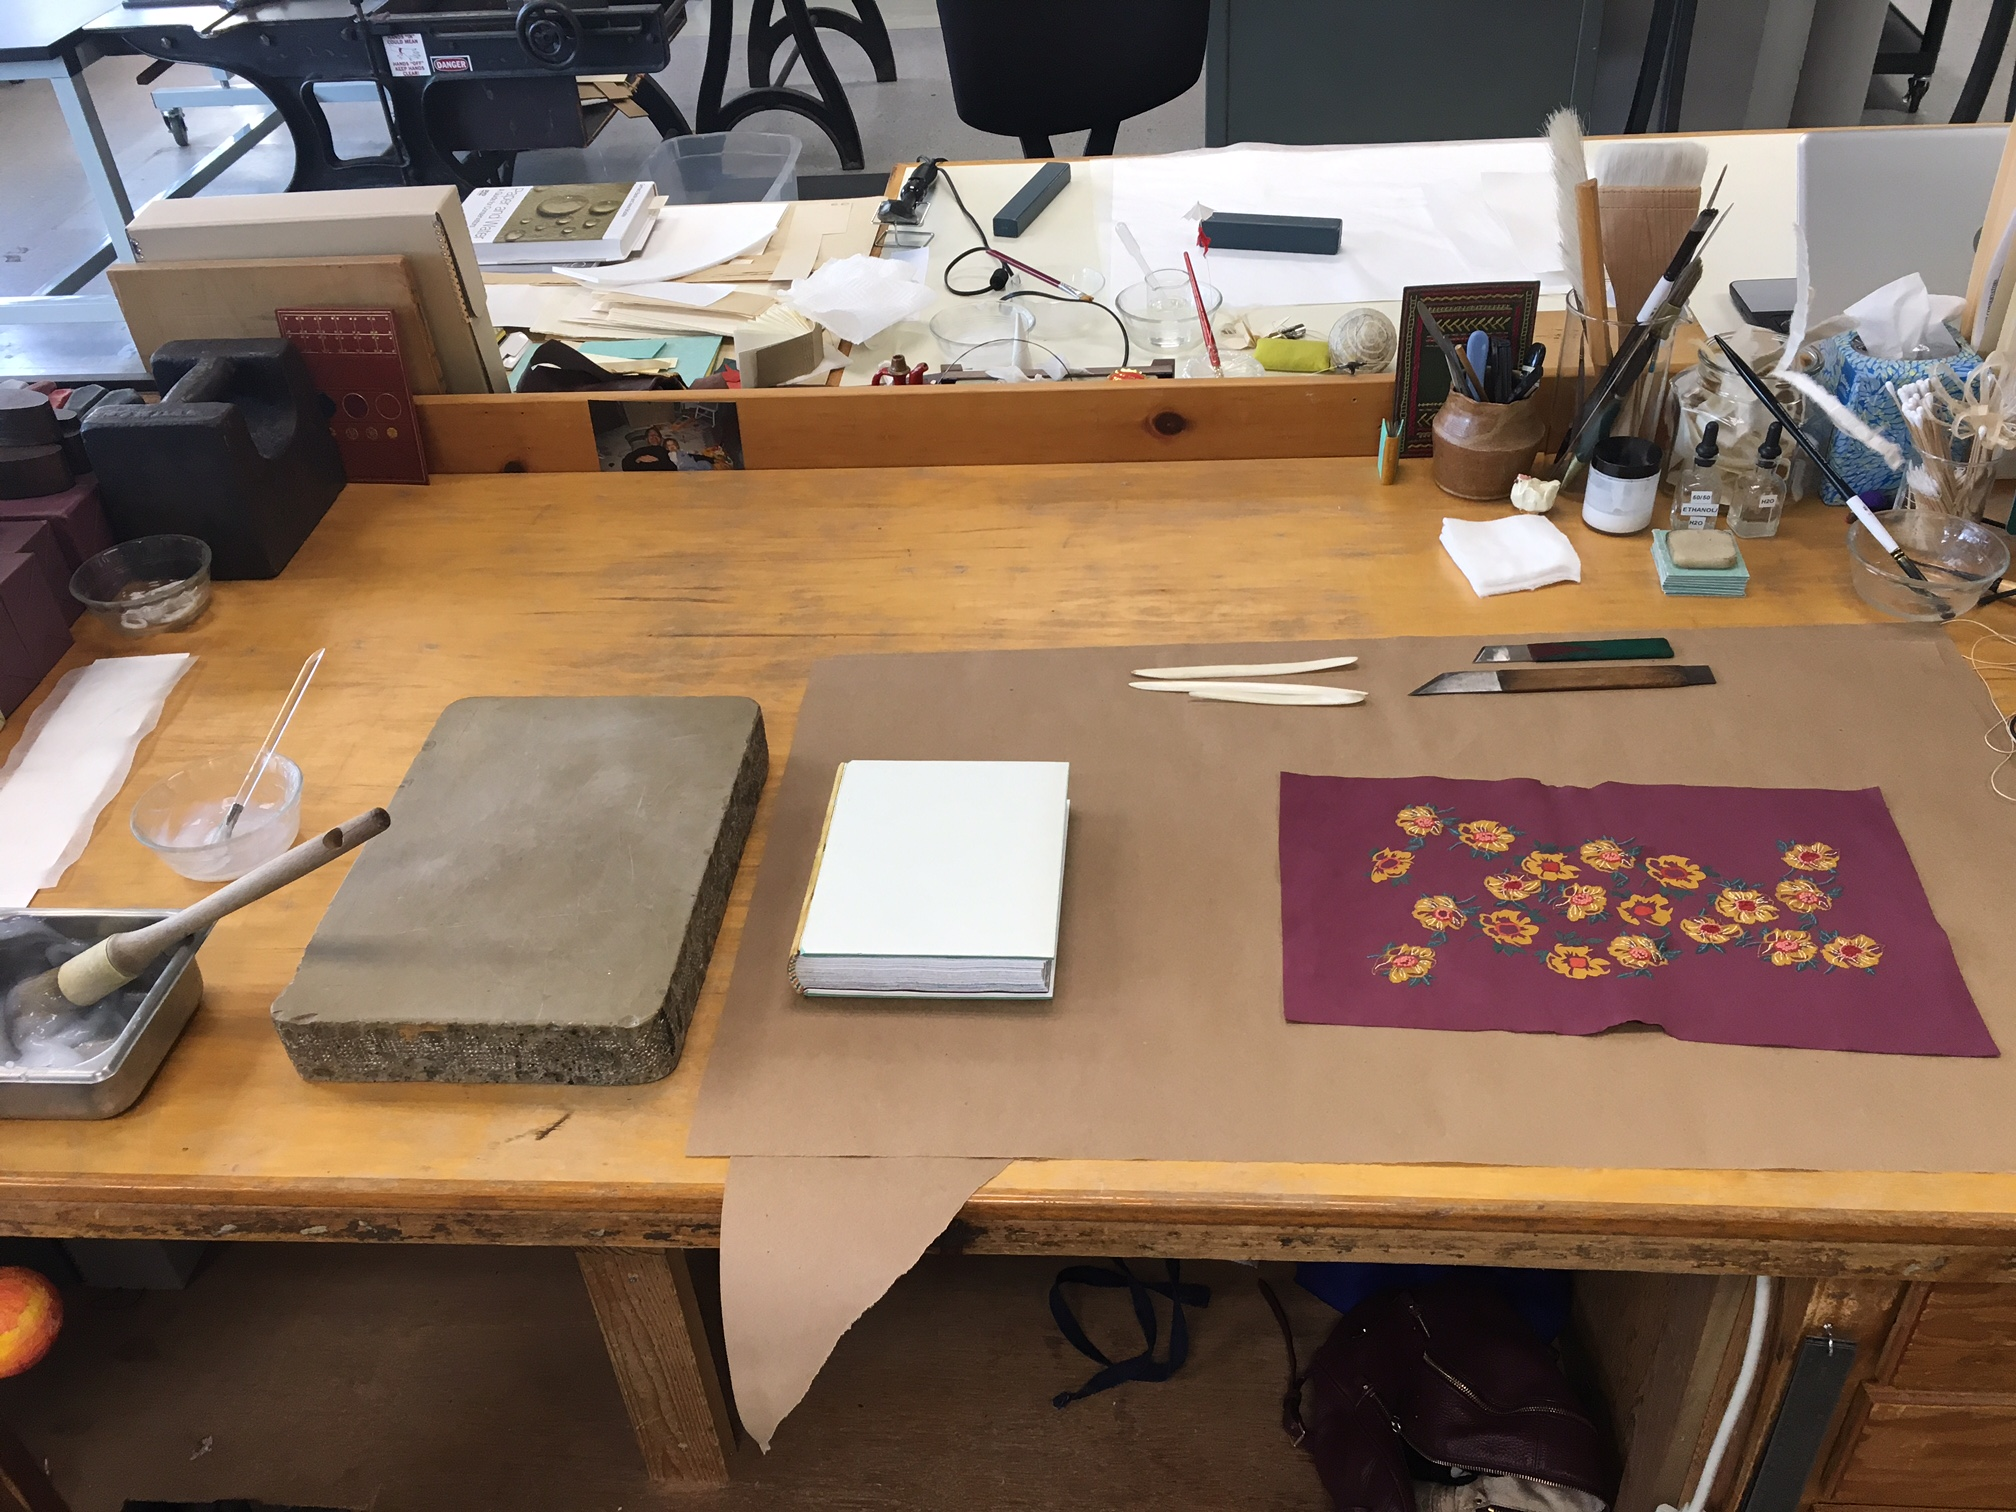 My bench set up before covering. You can see my paste, a litho stone, the binding (which I still had to cap up!), a few bone folders useful for forming headcaps and corners, paring knives, and the covering skin.